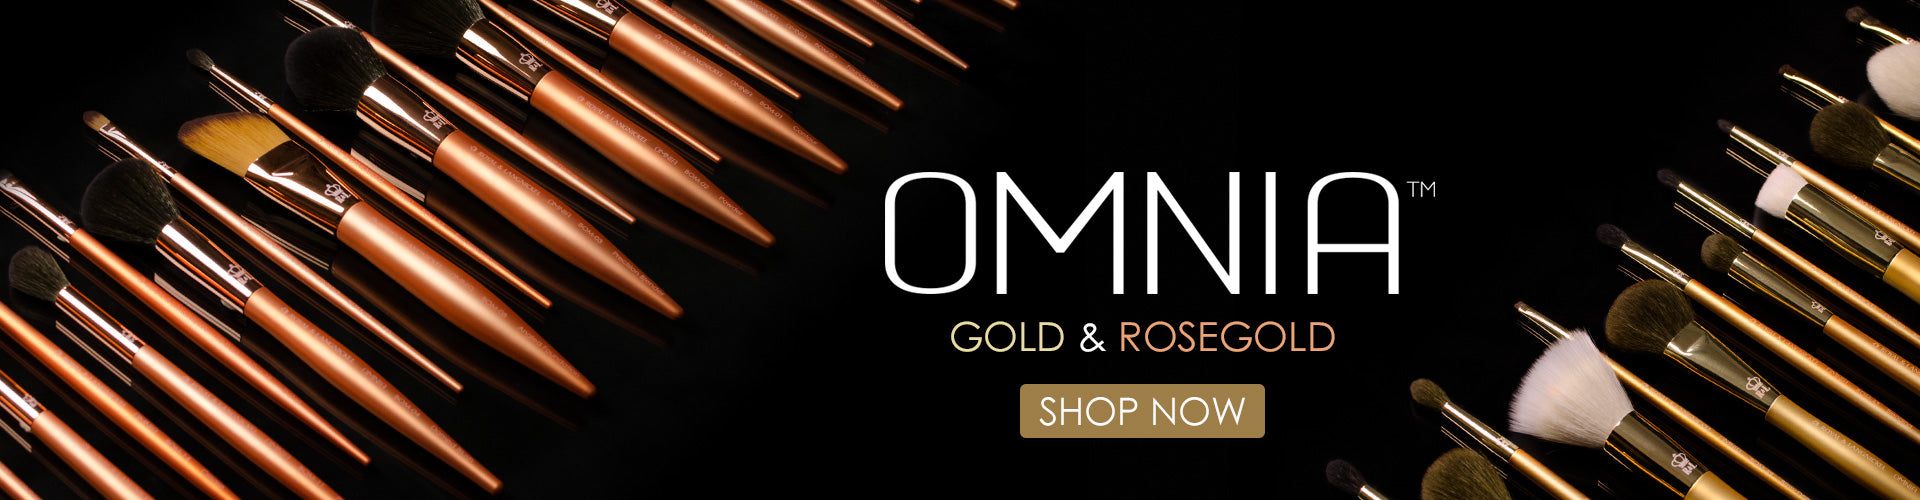 OMNIA™ - Out Now!